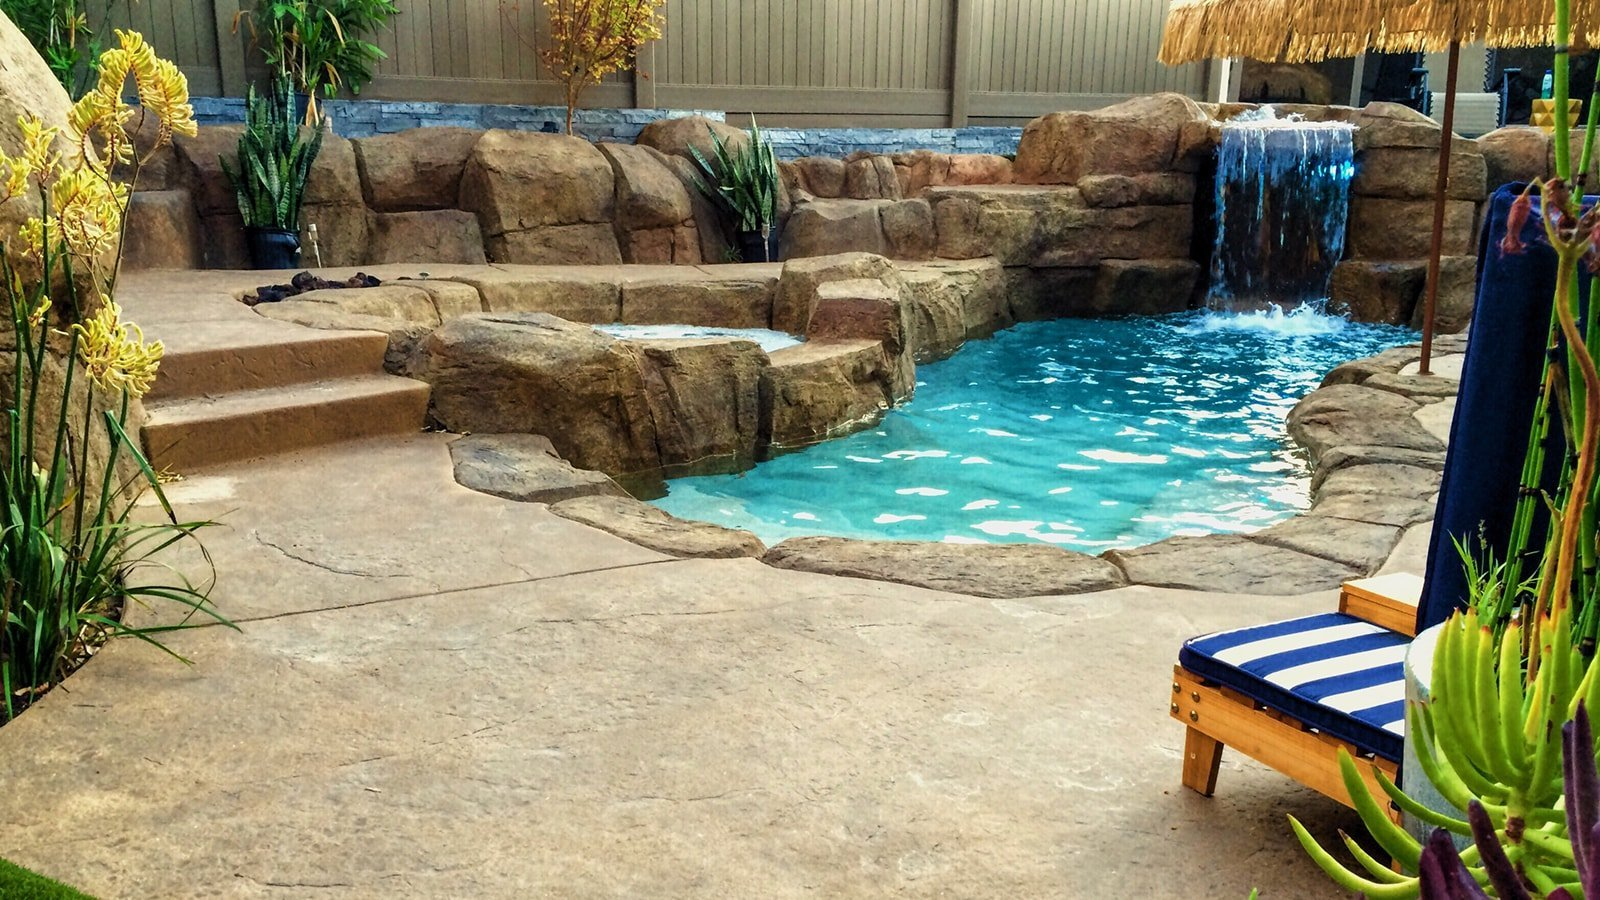 Backyard with beautiful hot tub and pool